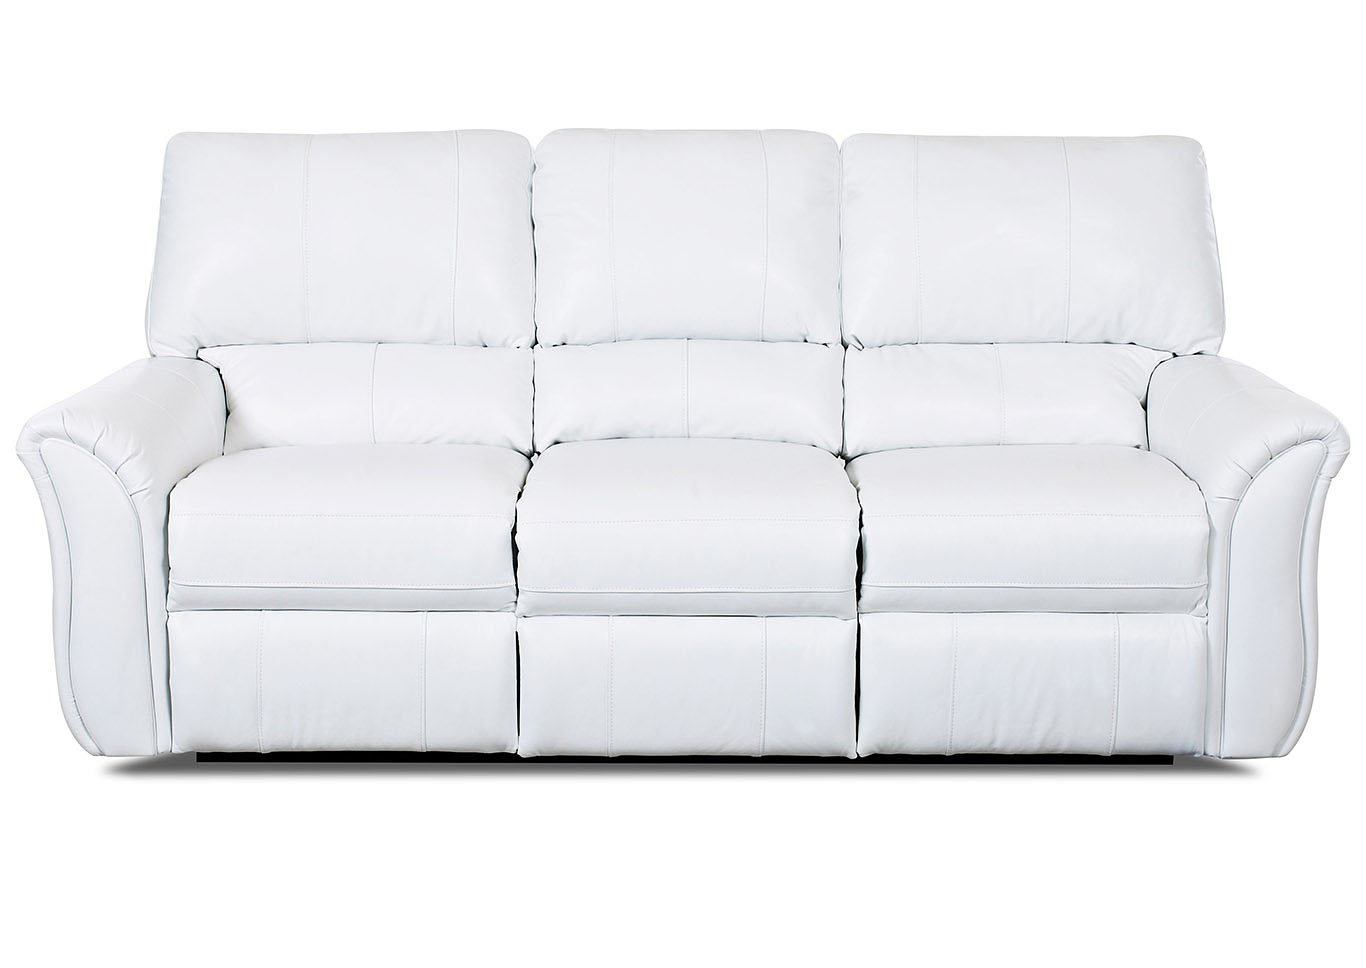 Marcus White Reclining Leather & Vinyl Sofa,Klaussner Home Furnishings